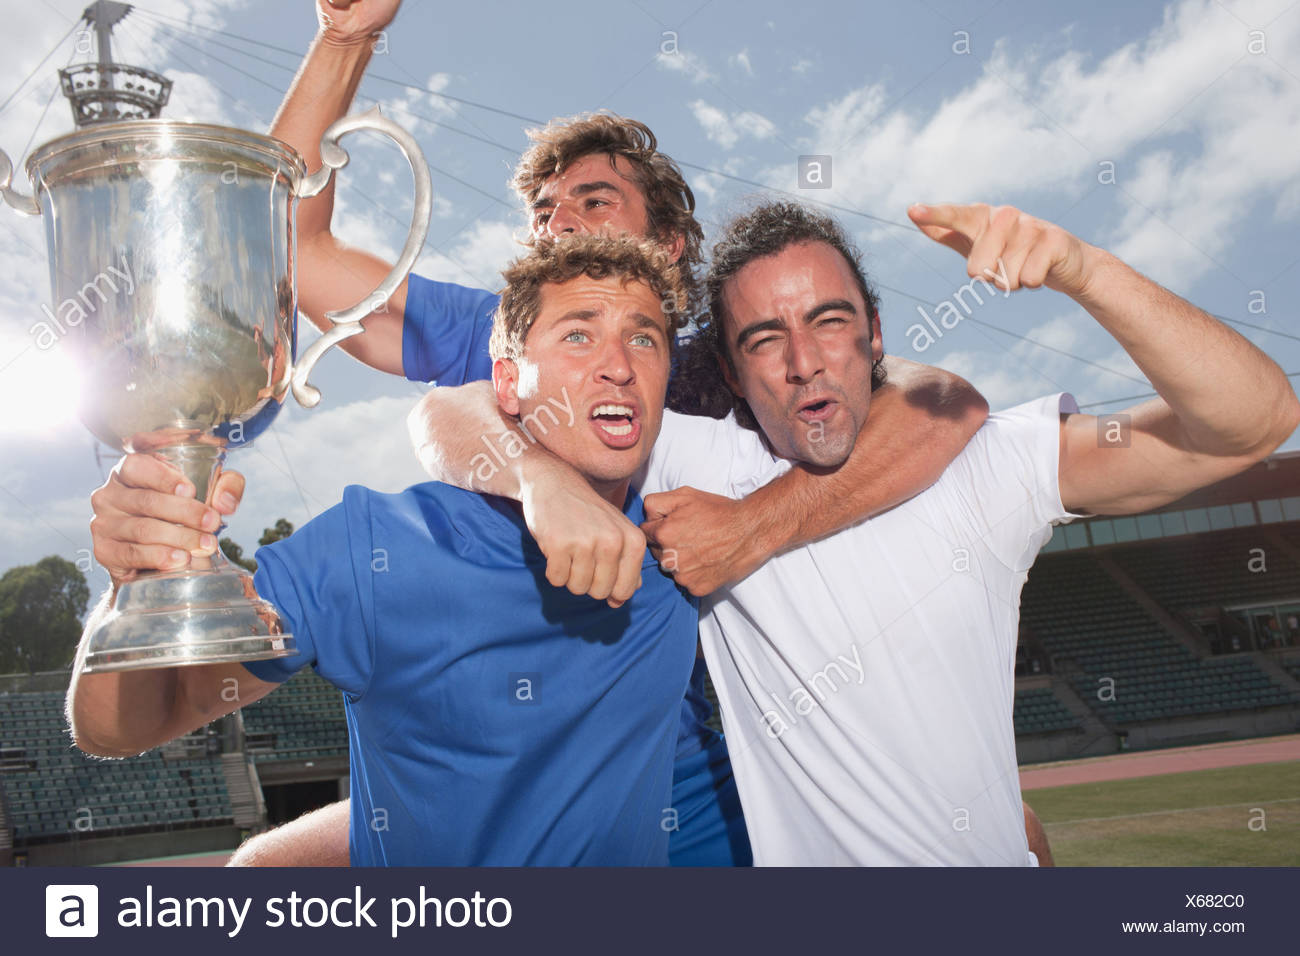 Soccer players cheering with trophy - Stock Image